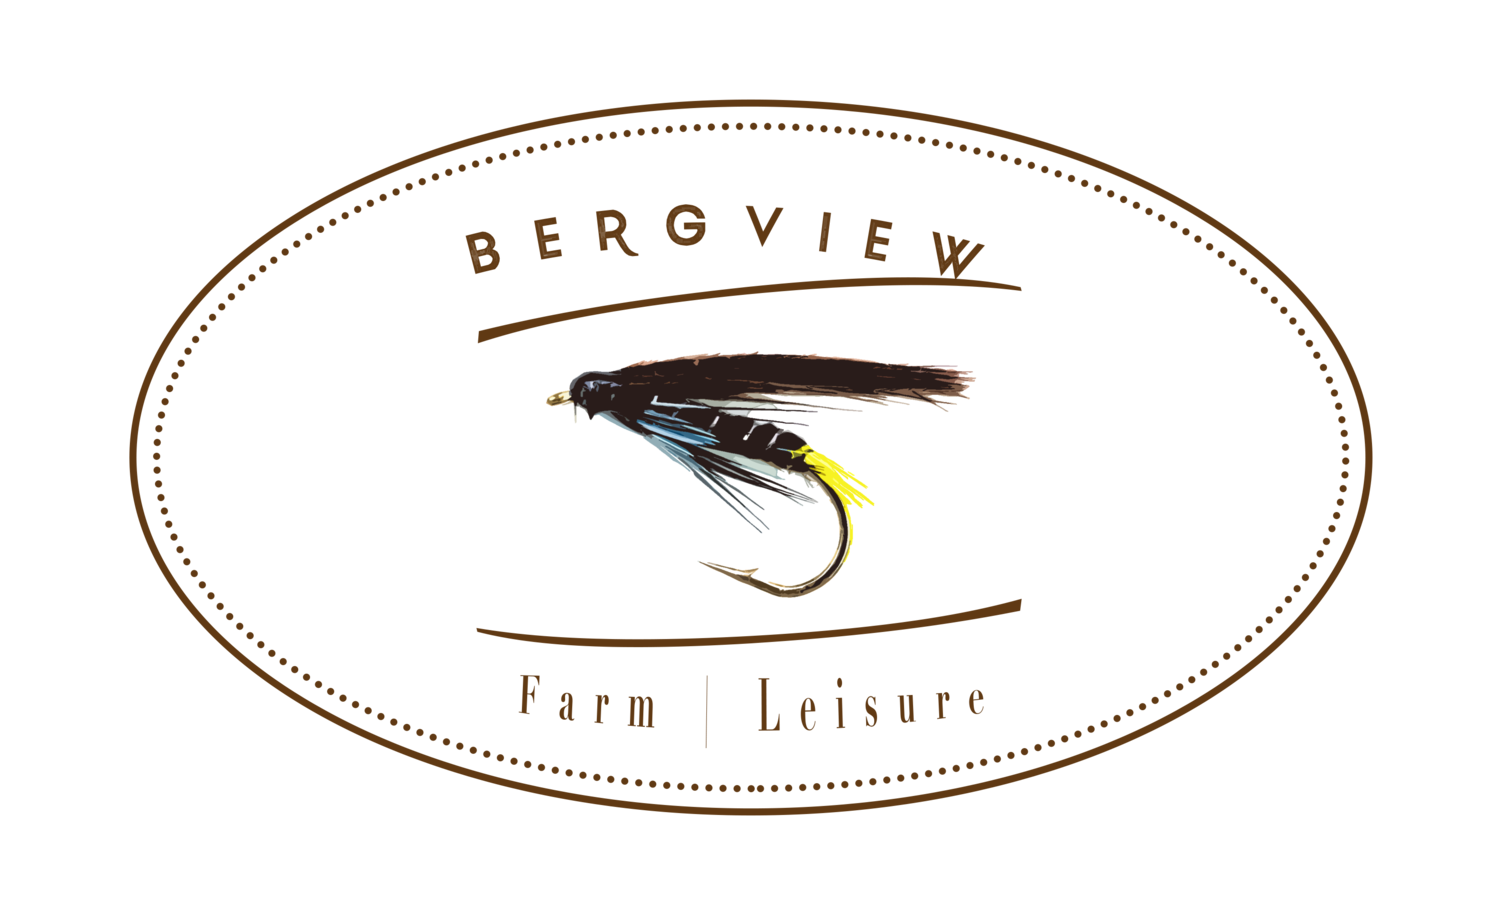 Bergview Farm & Leisure